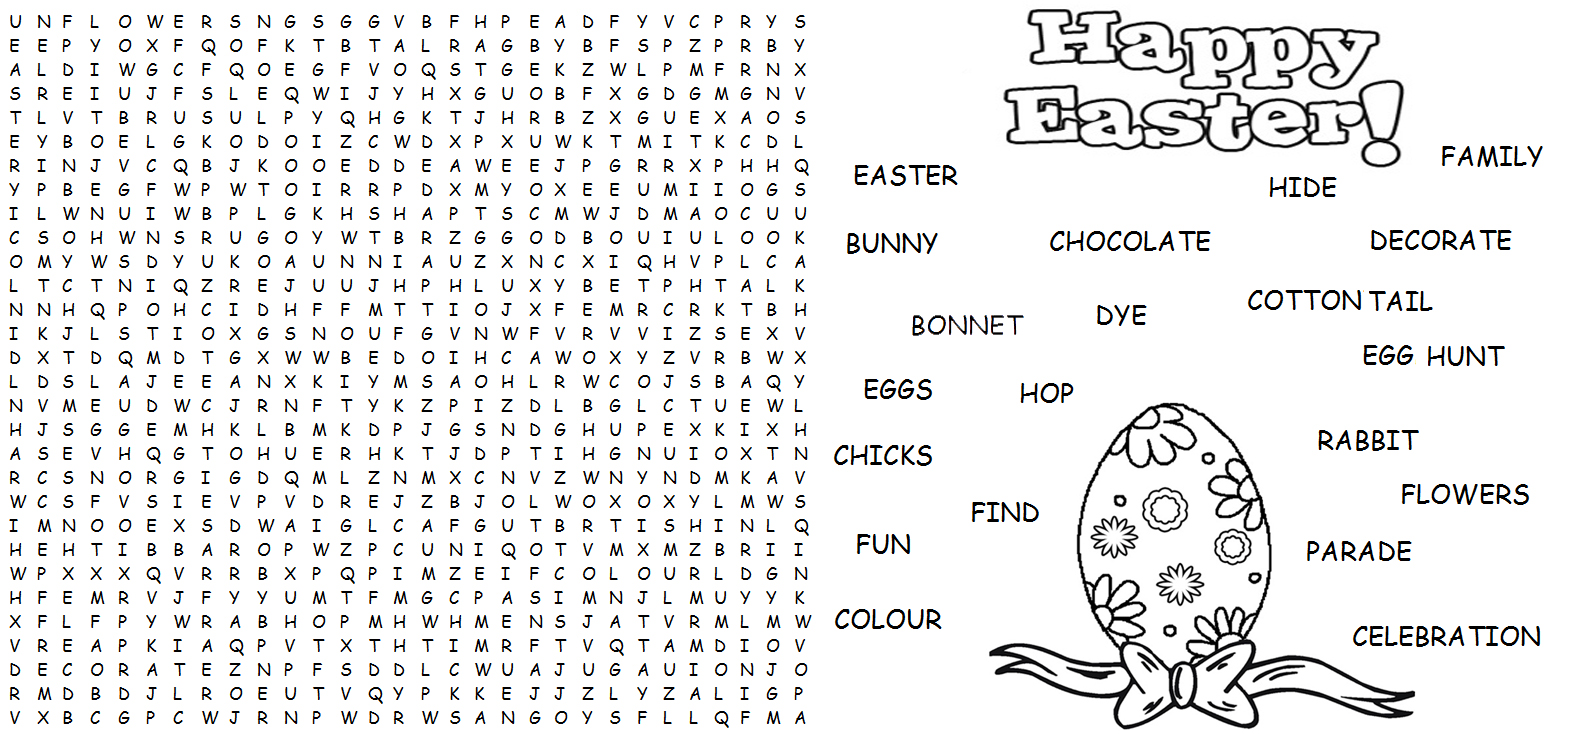 Worksheet Difficult Words To Spell For Kids word find easter activities hard